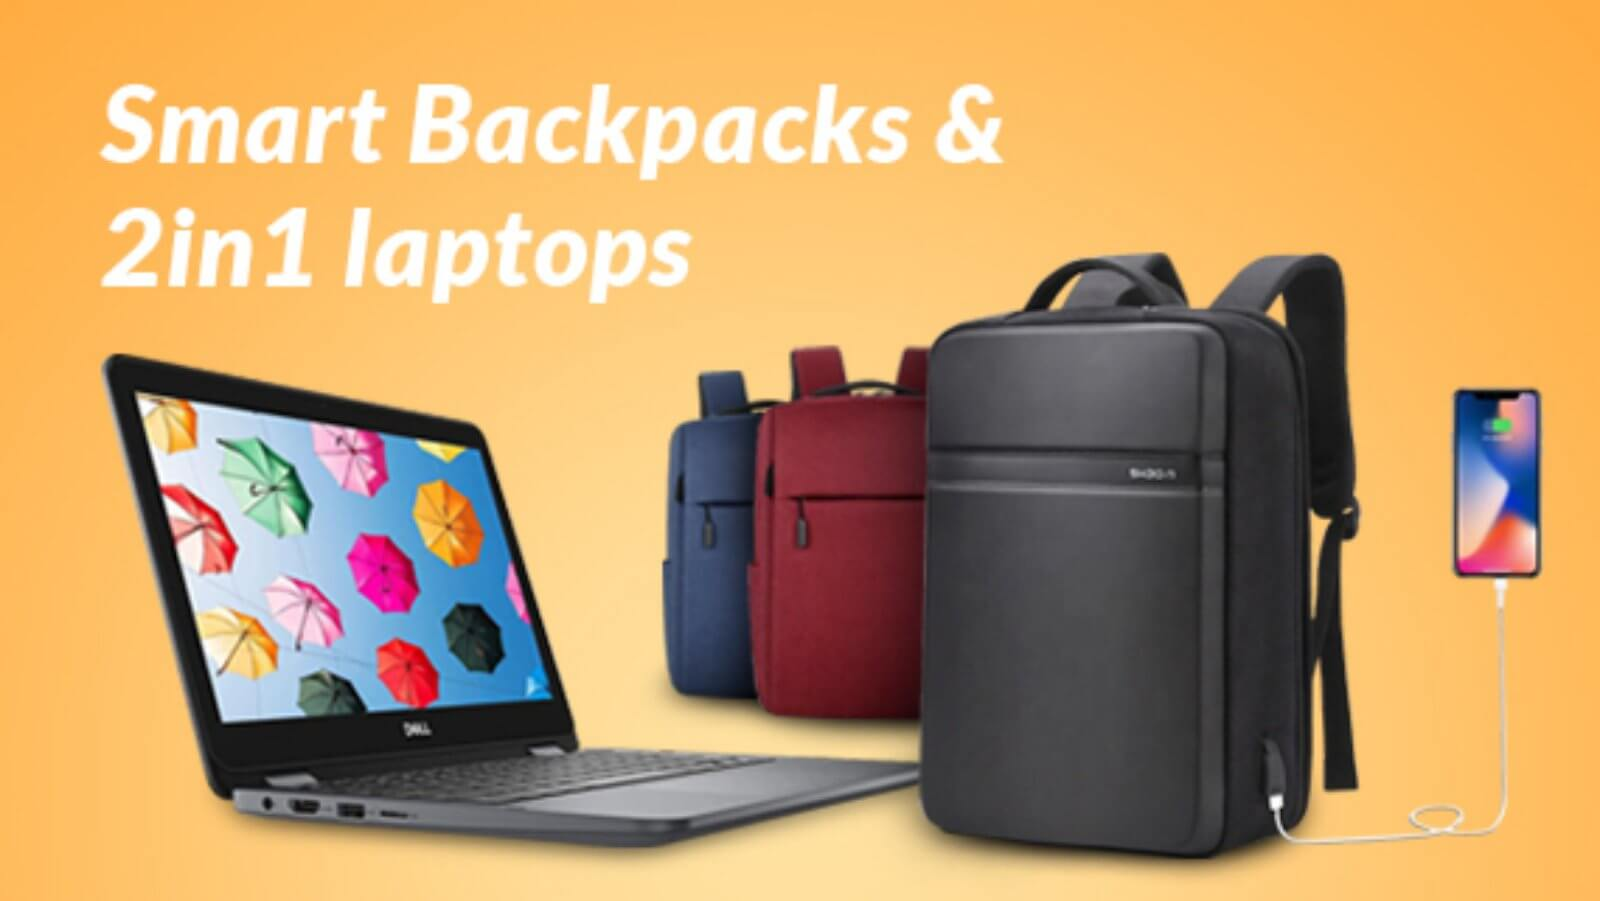 Laptops & Backpacks